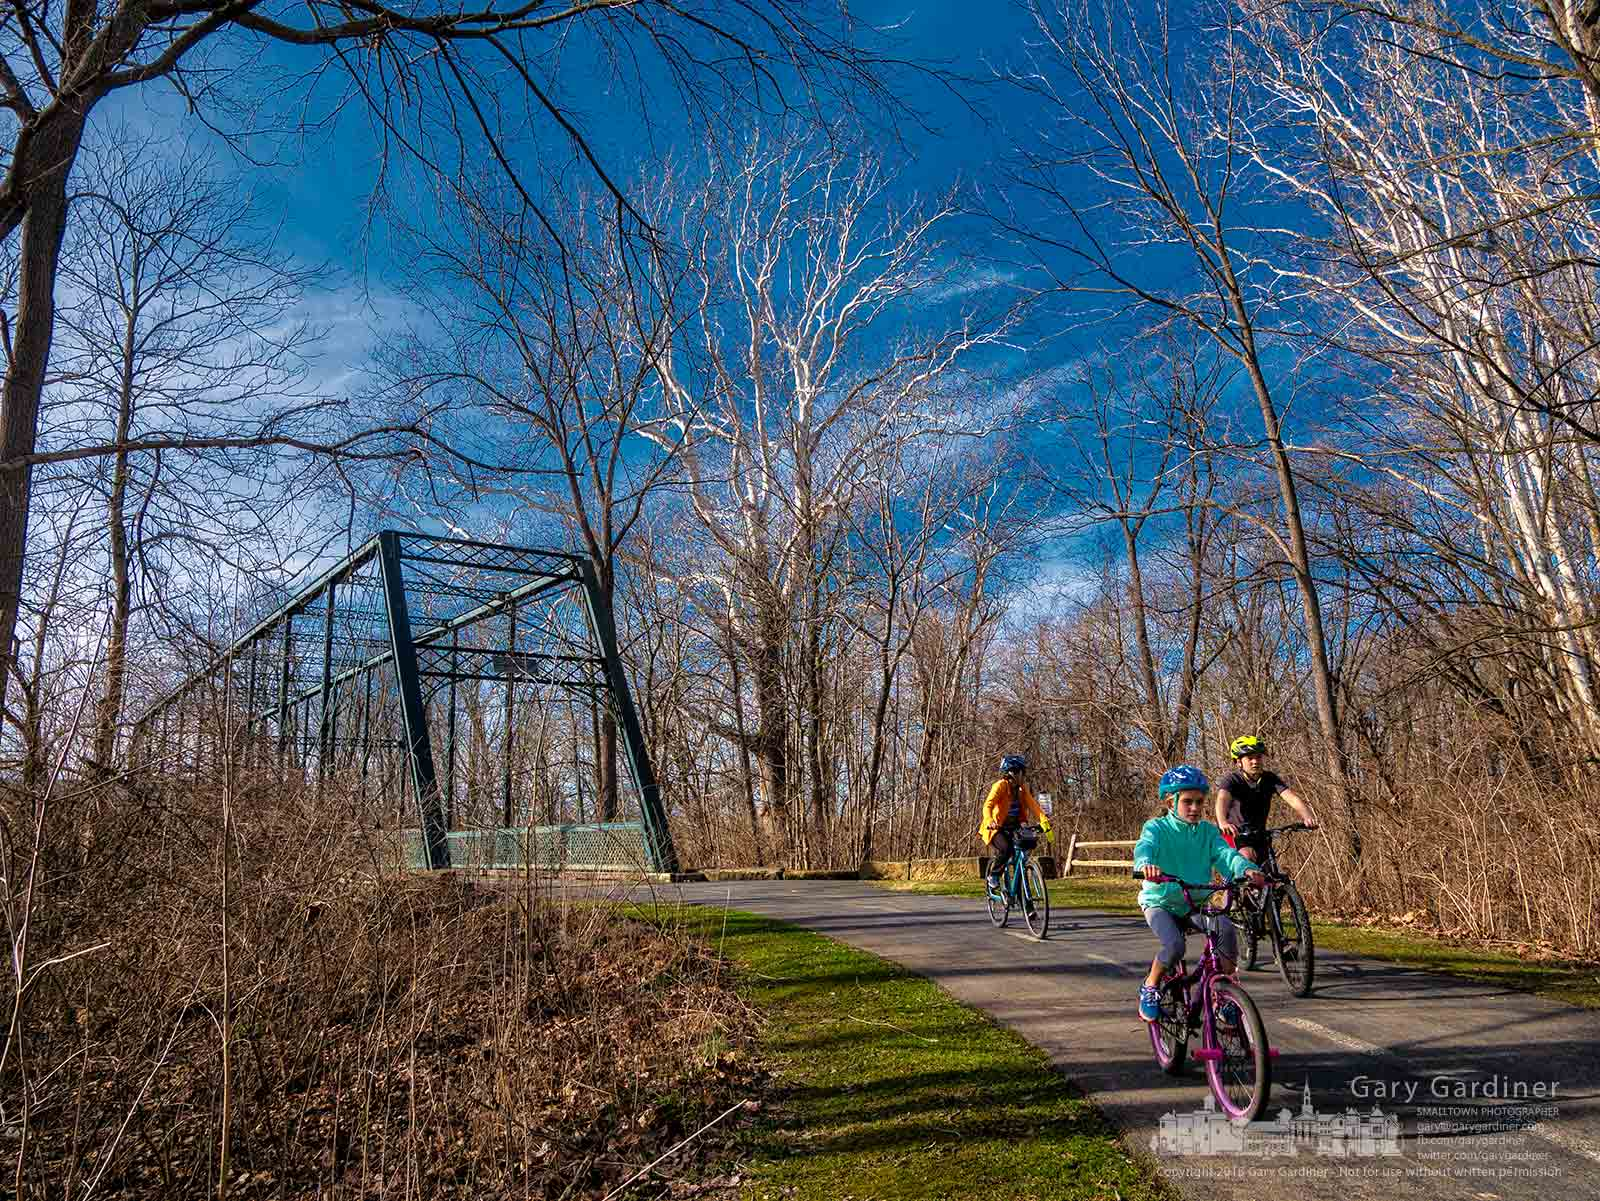 A family rides along the bike path near the steel bridge crossing Alum Creek as they enjoy a warm February afternoon together. My Final Photo for Feb. 27, 2018.